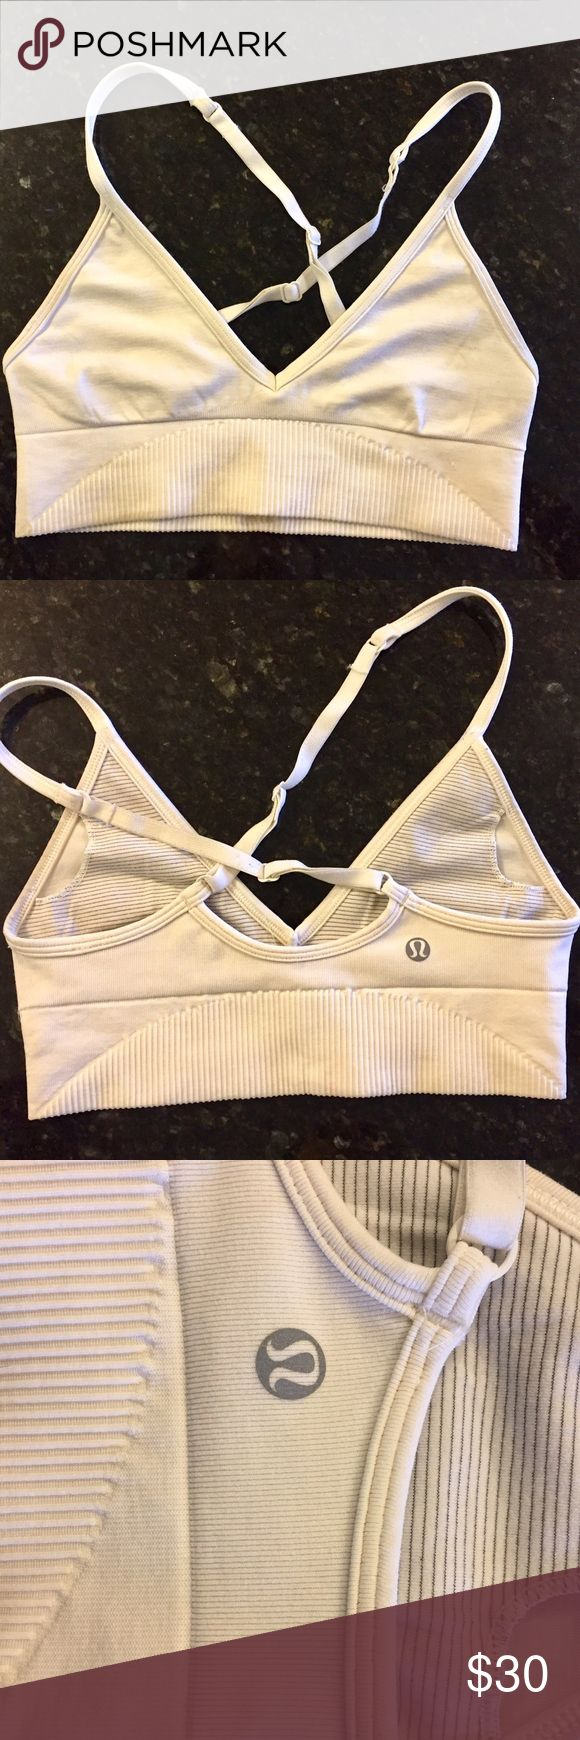 Lululemon Triangle Bra Sz 4, Cream This is a light support Bra from lululemon. Great for under tanks and tee shirts. Smooth look under shirts. There is some very mild discoloration but otherwise great condition. Go for gentle Pilates, light yoga, or to-from and lounging. Cream color. I cannot remember the actually name of this style. lululemon athletica Intimates & Sleepwear Bras